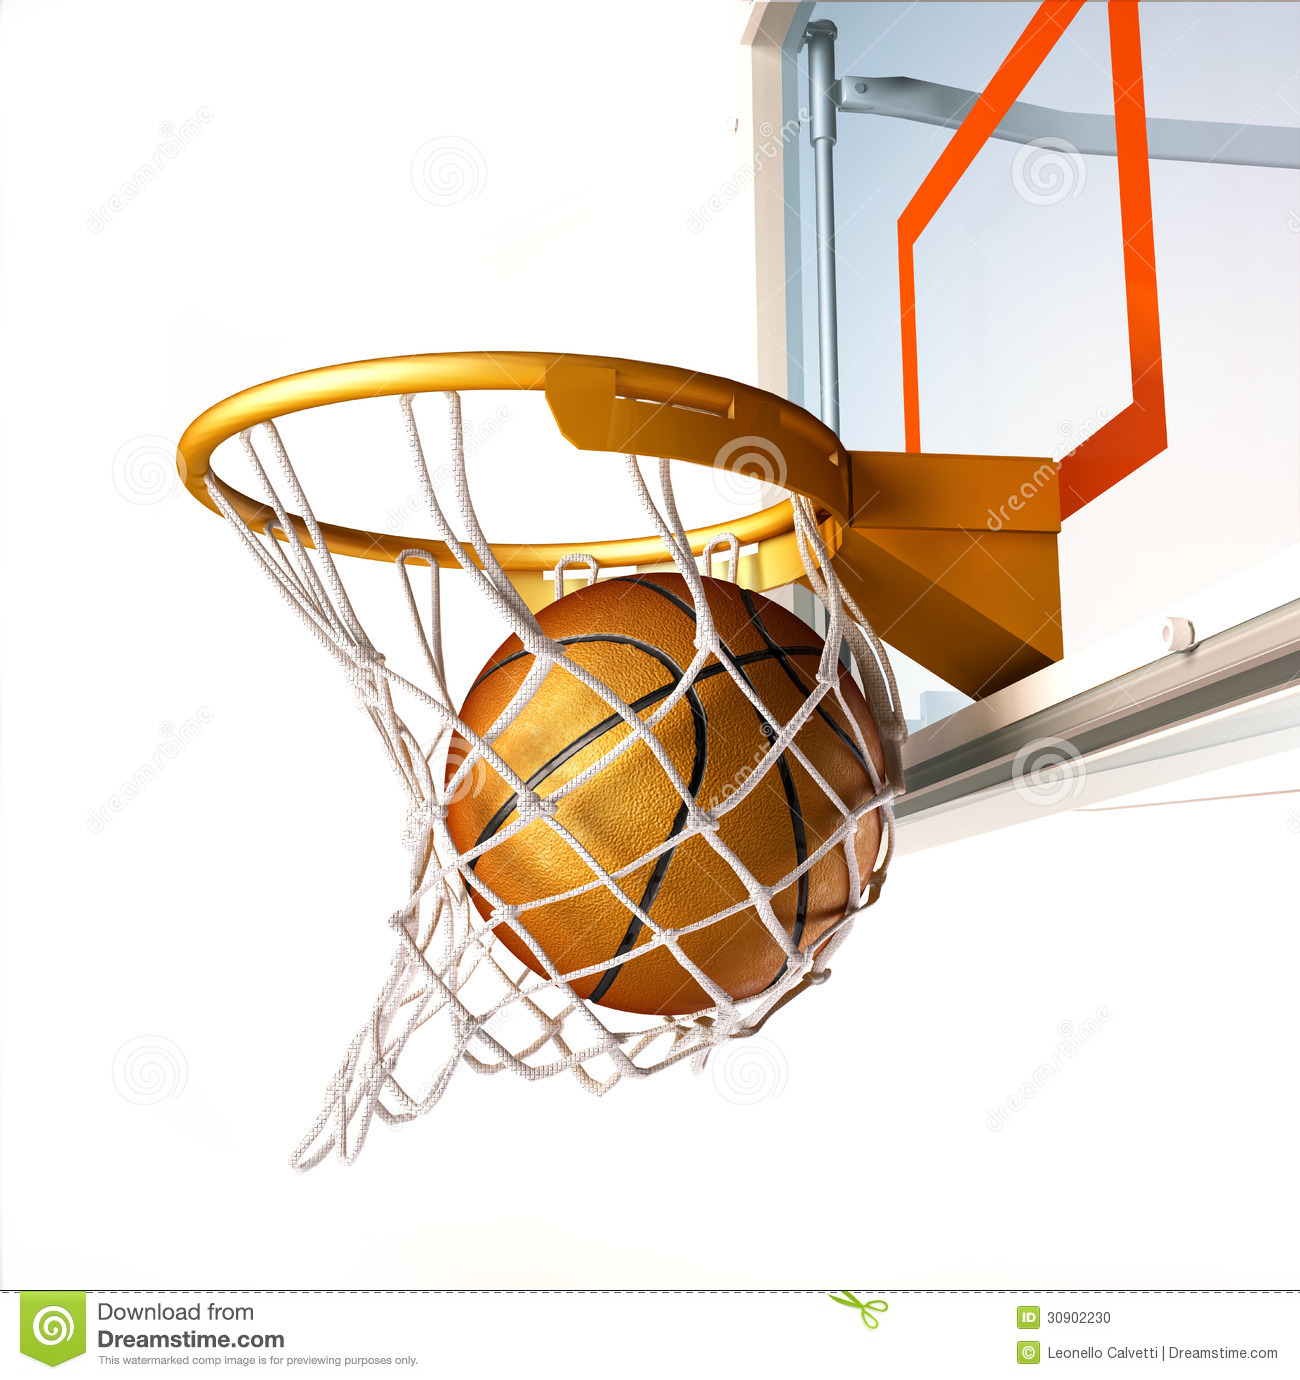 Basketball centering the basket close up view stock photo image 30902230 - Panier de basket gonflable ...